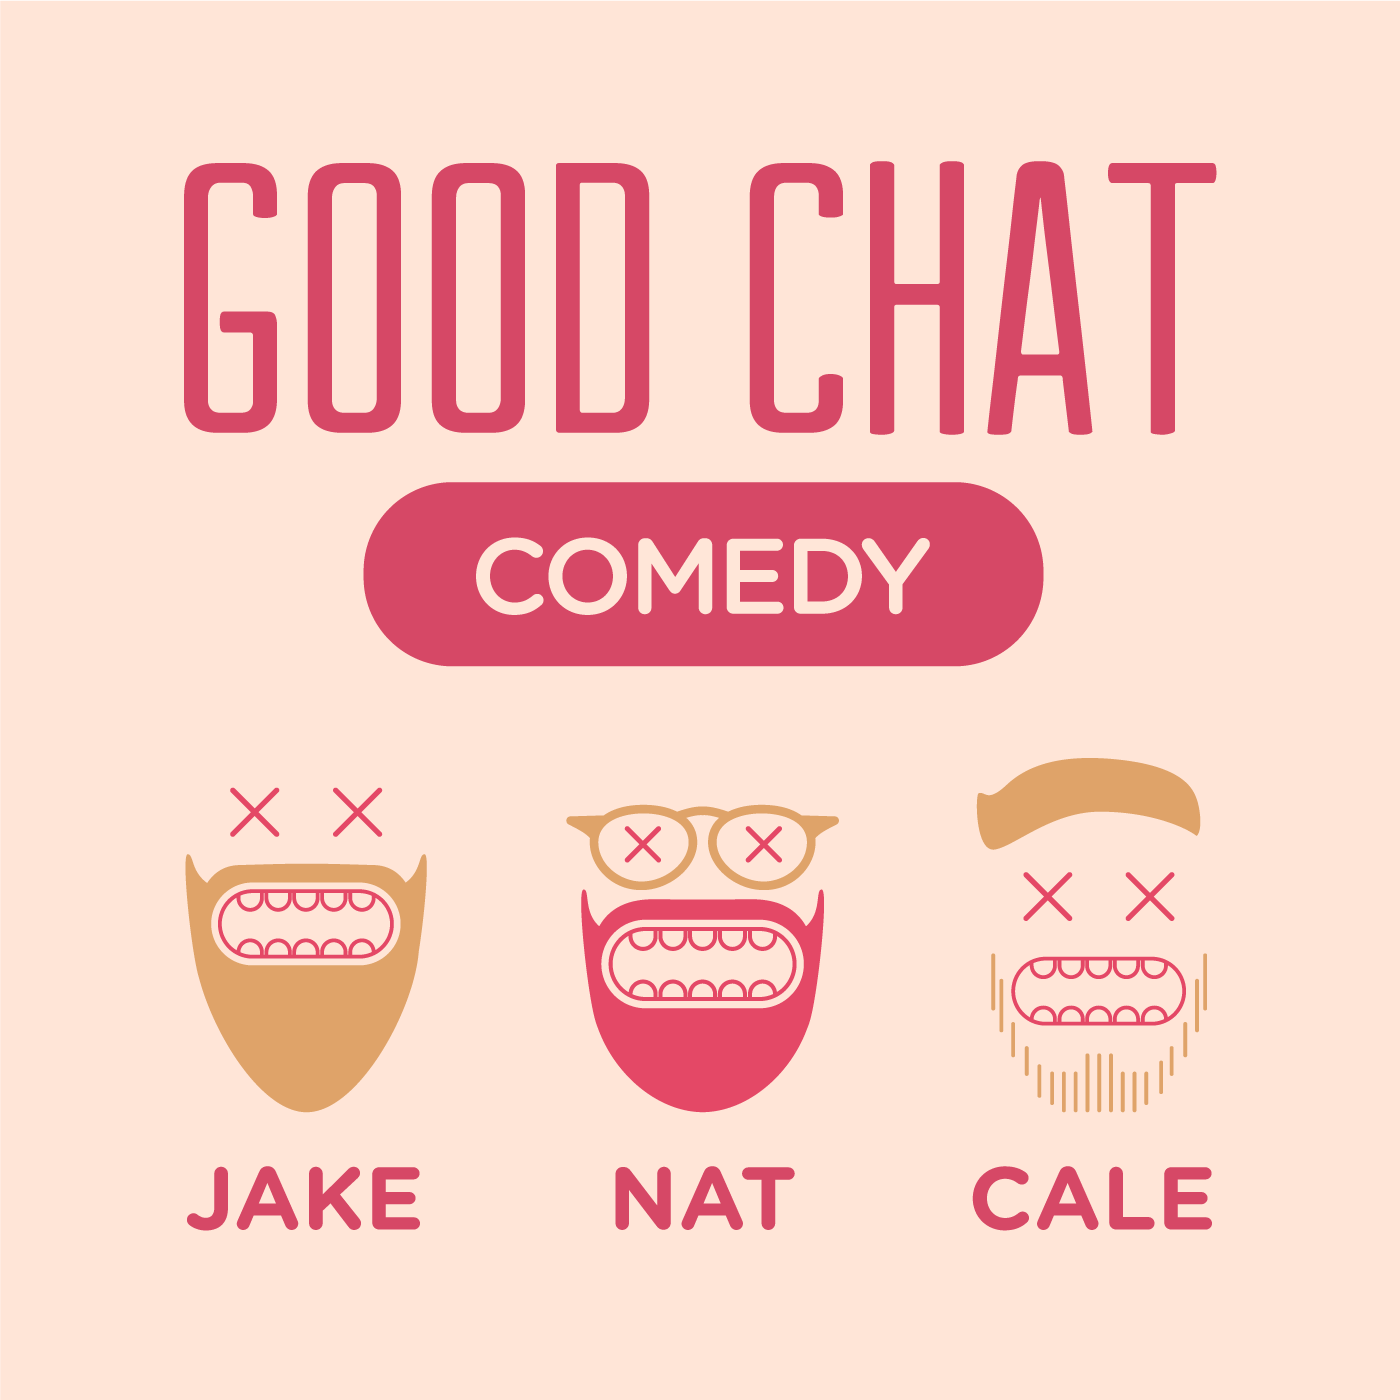 Good Chat Comedy